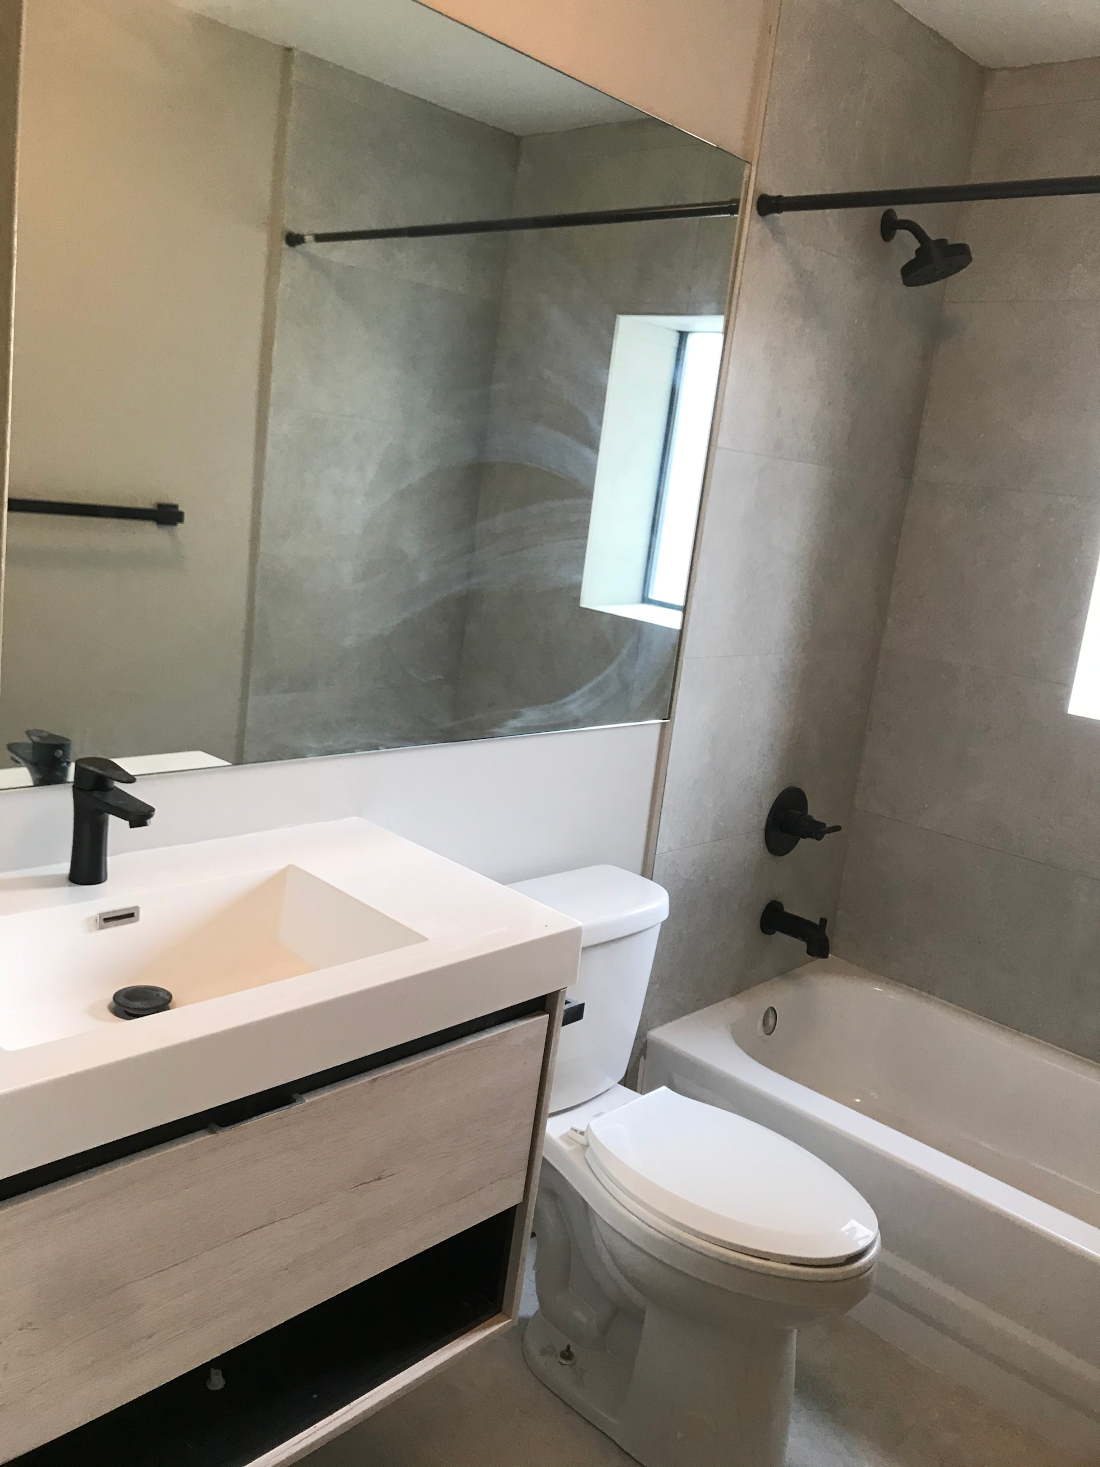 Stylish Bathroom Fixtures at Riverview at Nyack Apartments in Nyack, New York